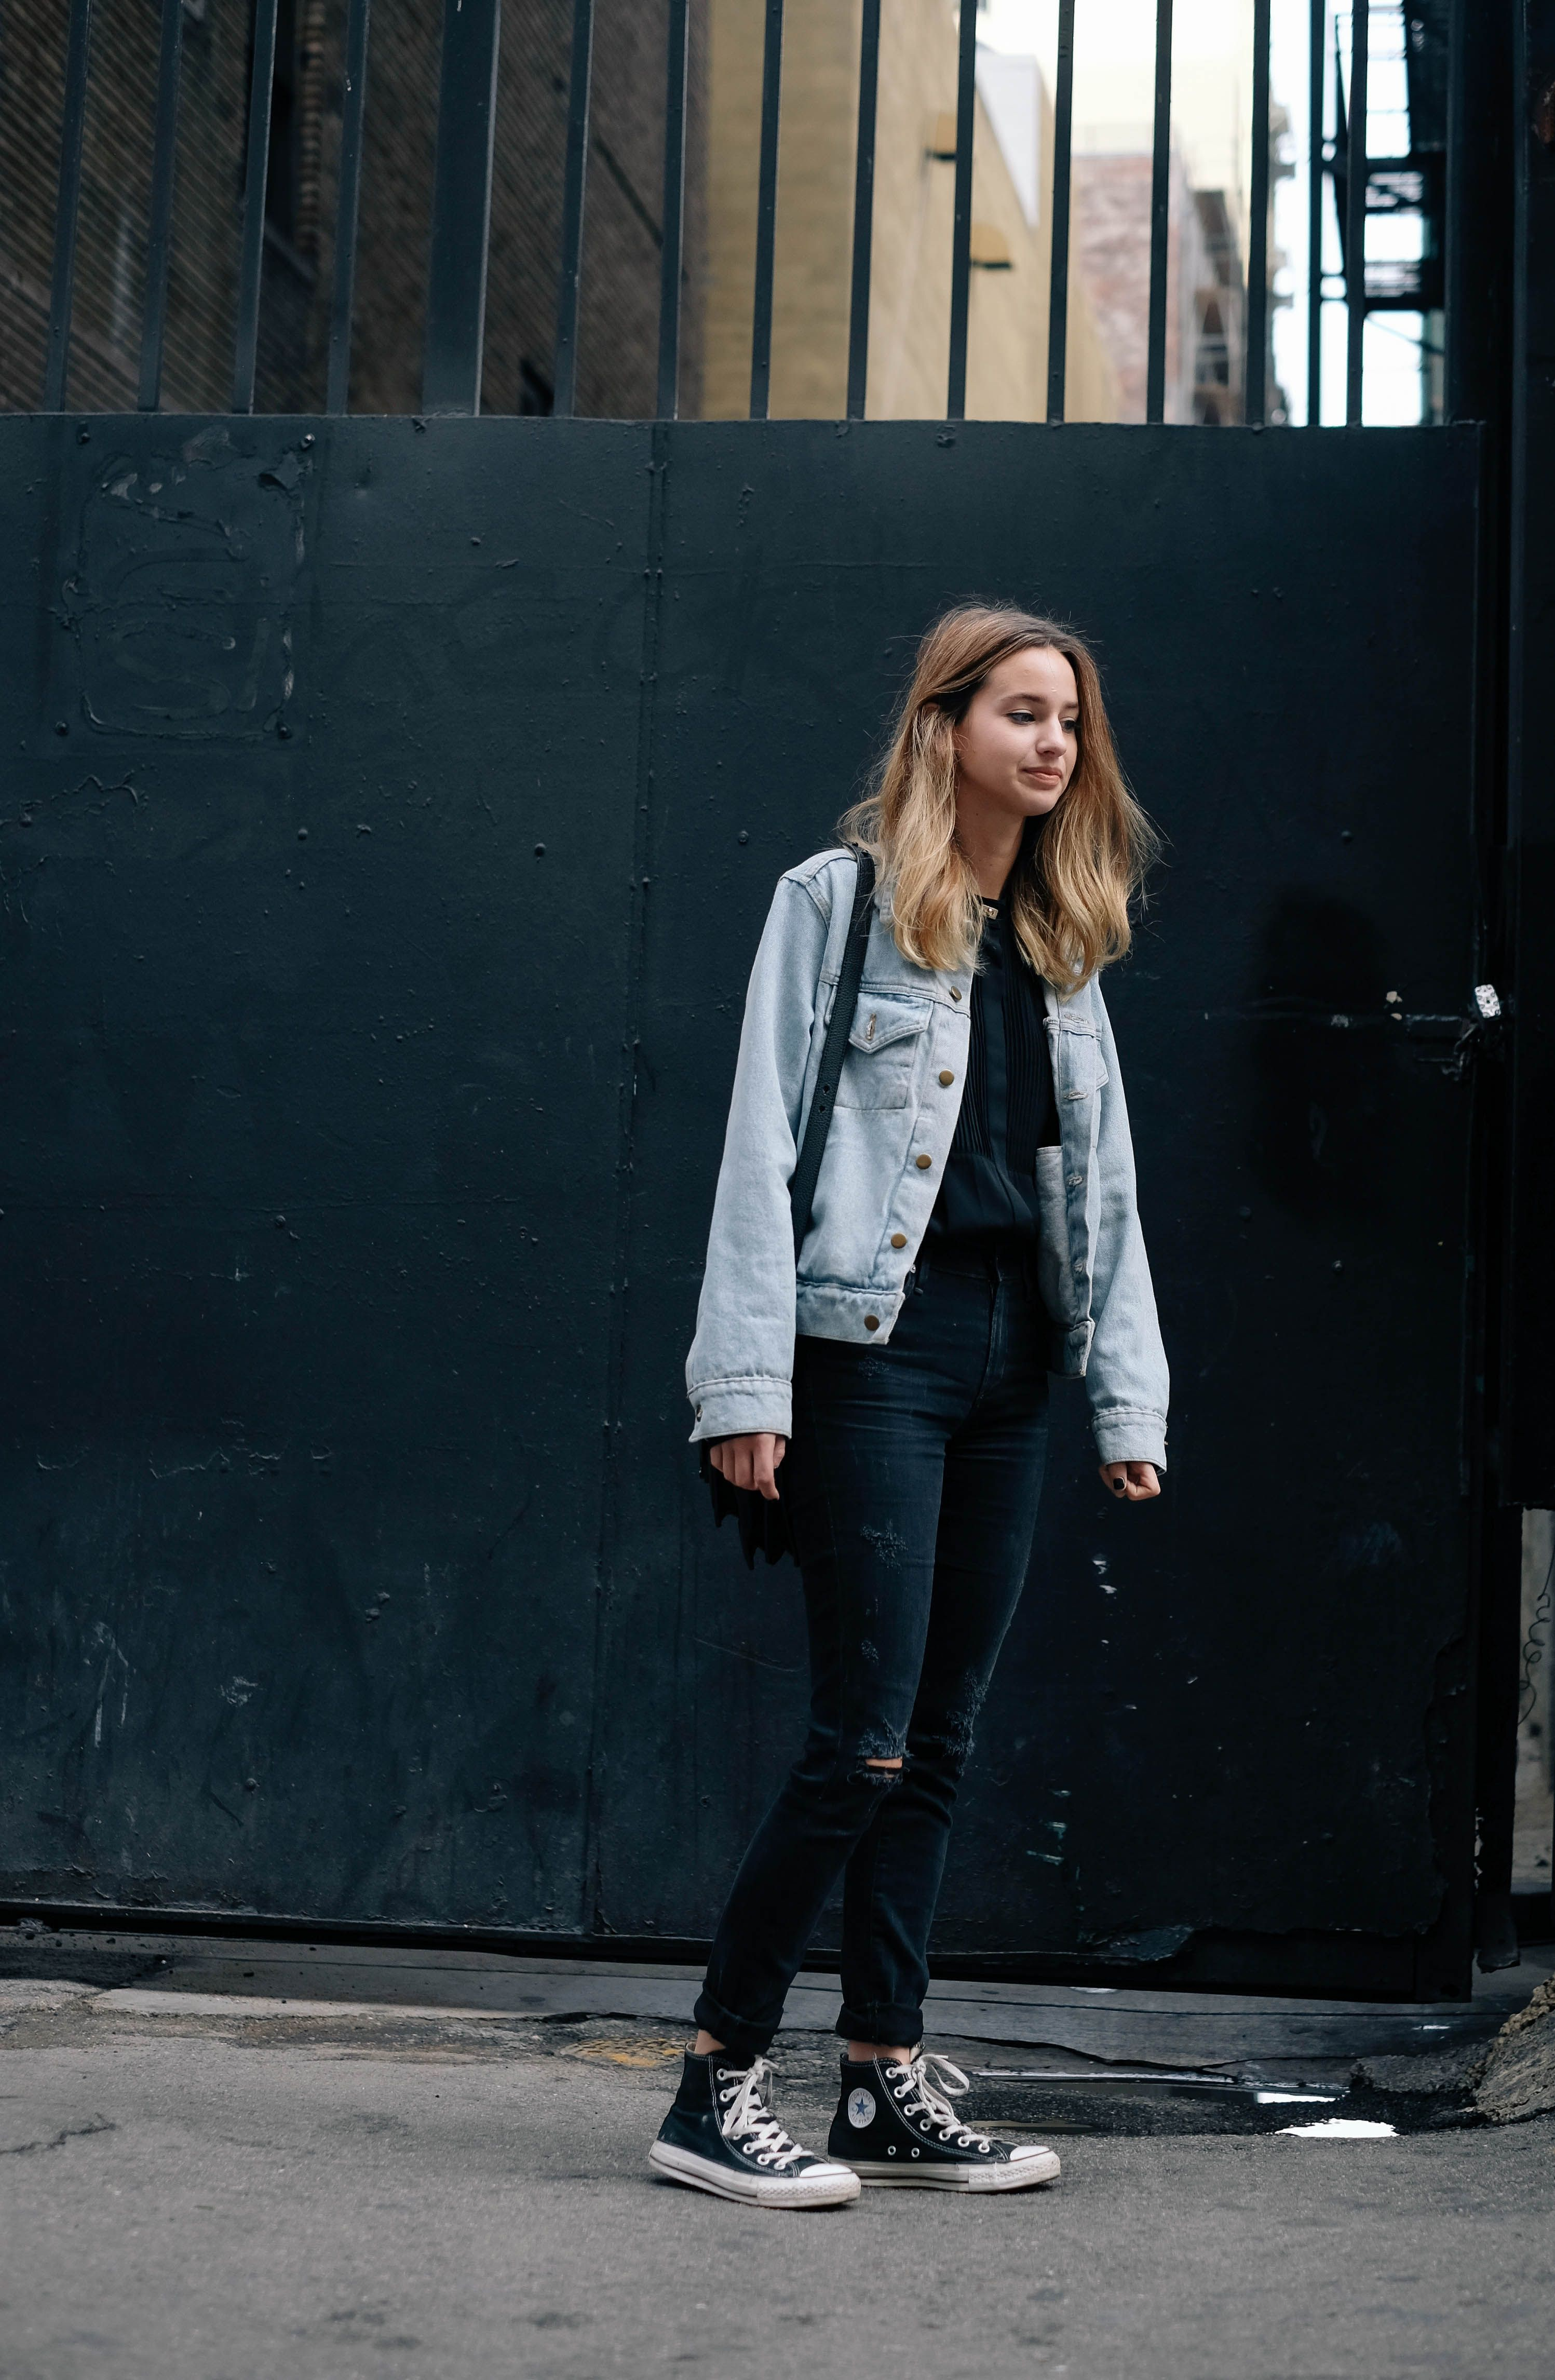 Basically looks like this dress denim jacket converse example - Super Casual And Tomboy Street Style All Black With Chucks And A Light Blue Denim Converse Outfitsdenim